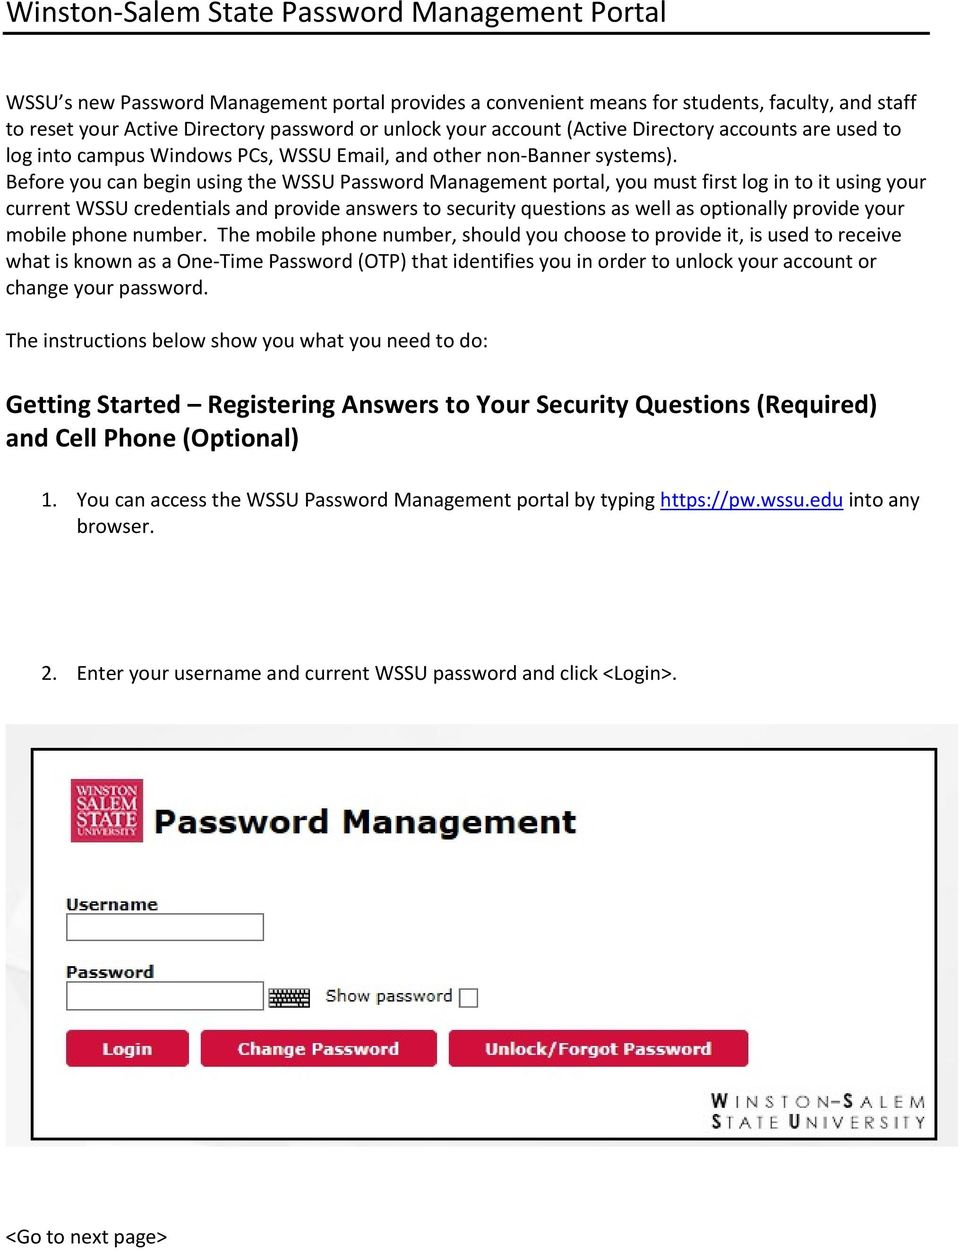 Before you can begin using the WSSU Password Management portal, you must first log in to it using your current WSSU credentials and provide answers to security questions as well as optionally provide